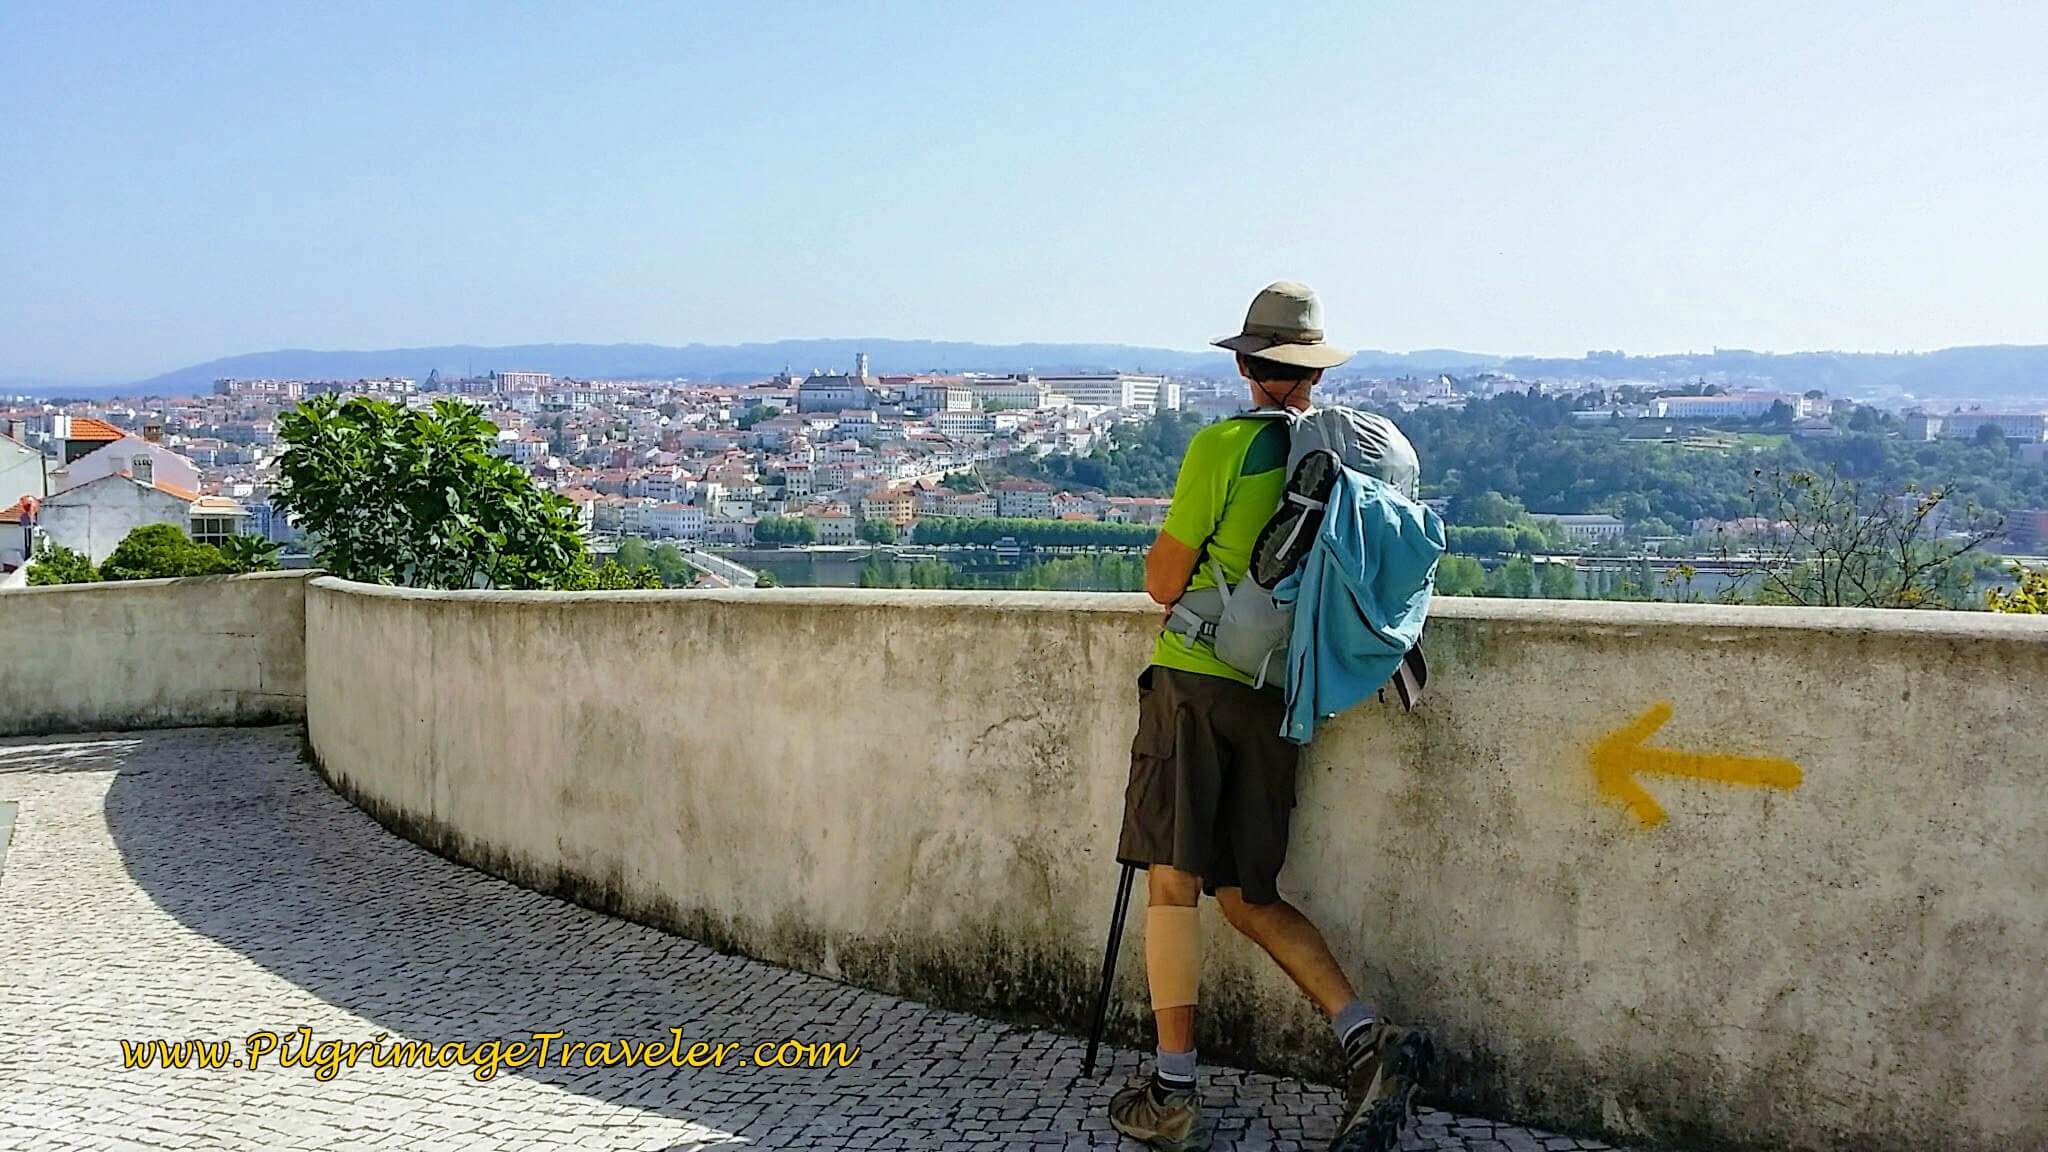 Wow! Rich at the Observatorio Overlooking Coimbra